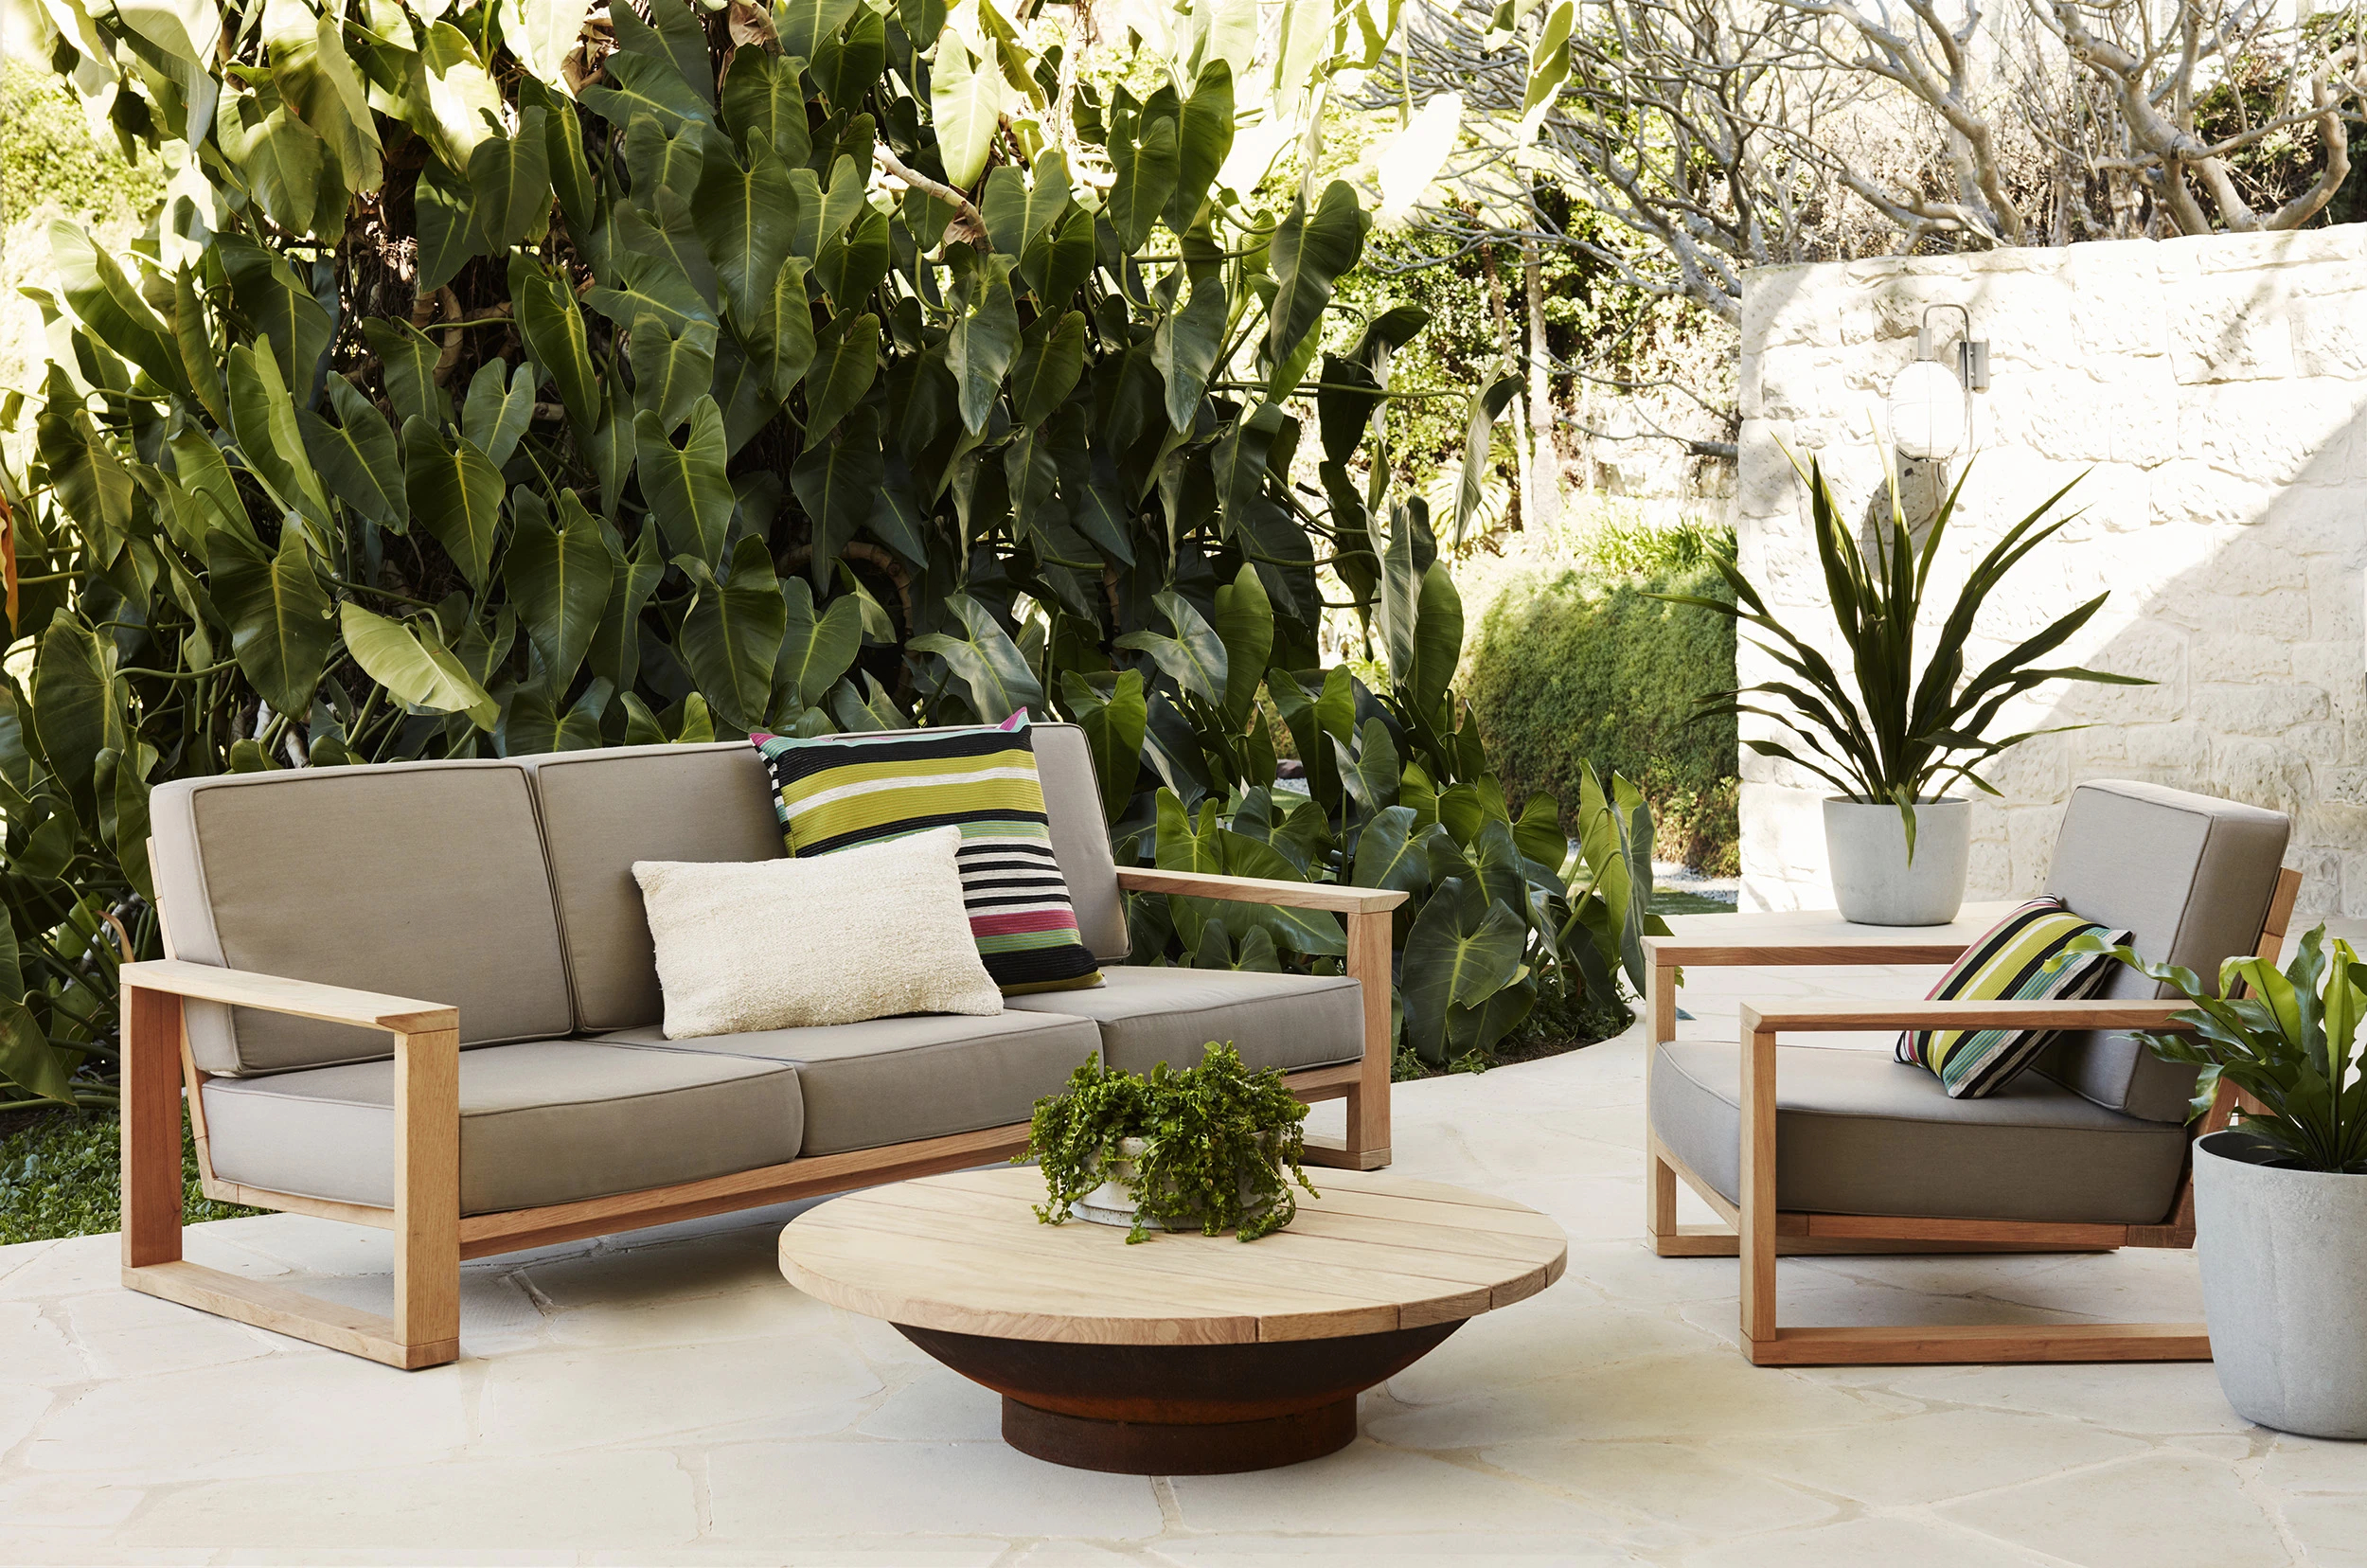 garden-furniture - The Immense Beauty Of Outdoor Furniture Used Indoors My Decorative